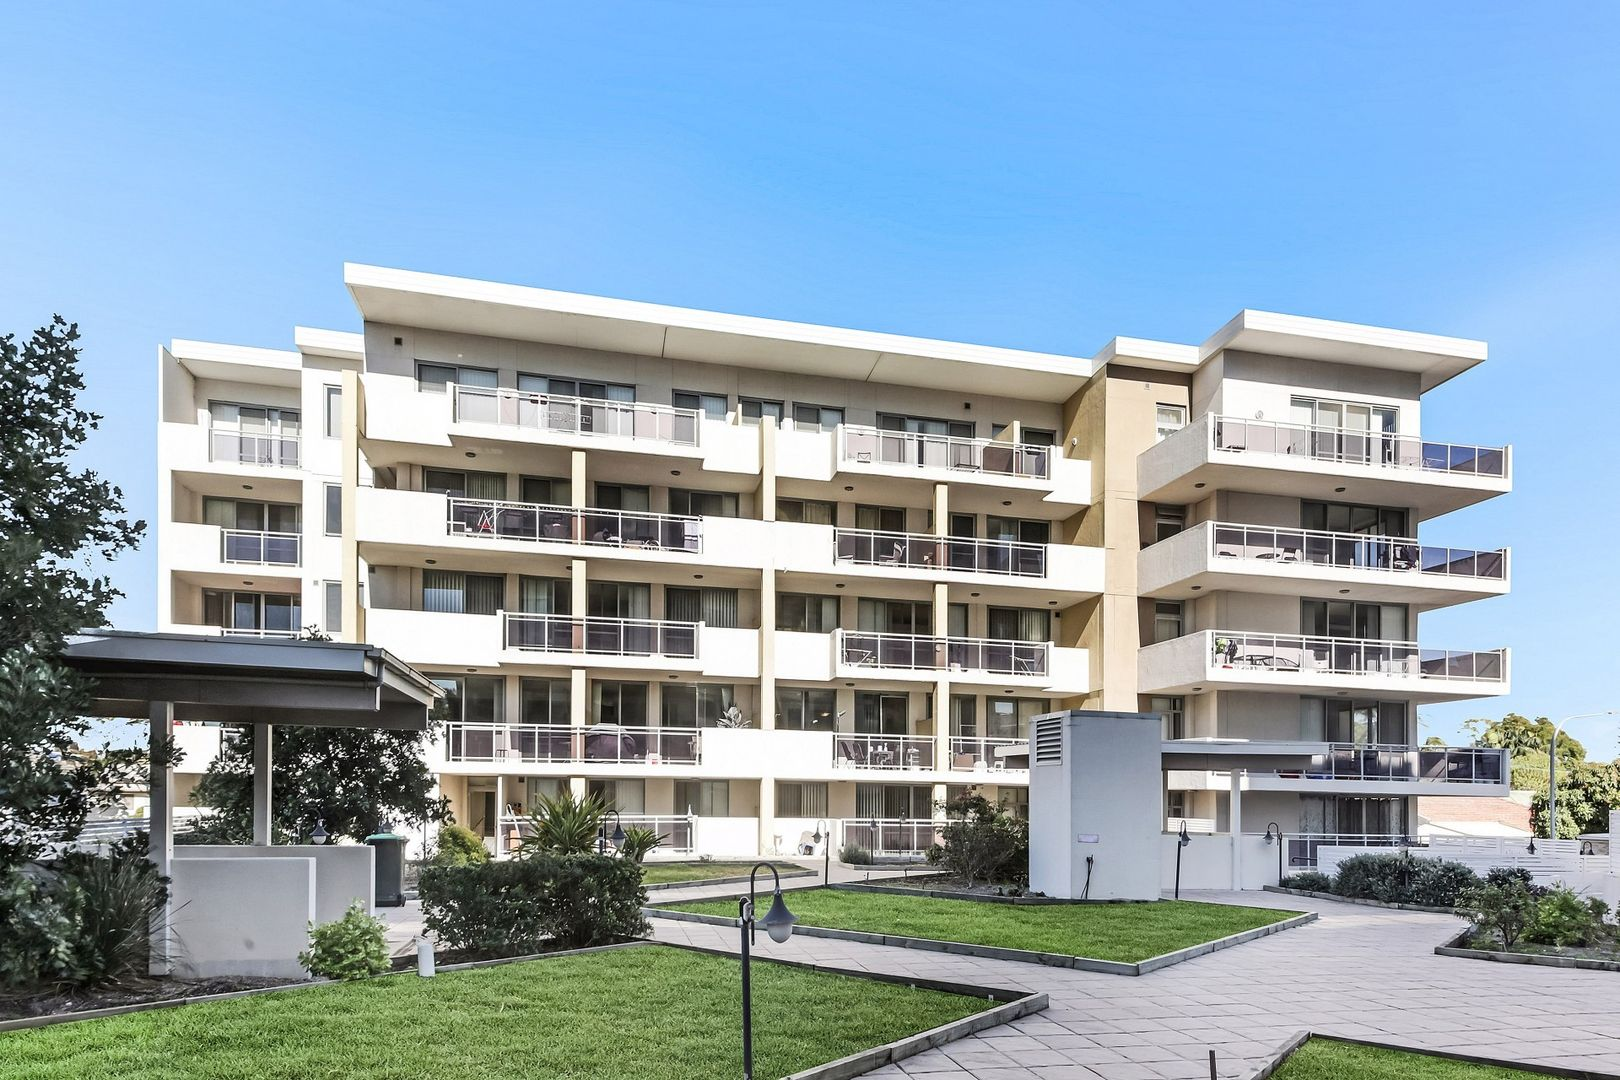 22-26 Innesdale Road, Wolli Creek NSW 2205, Image 0